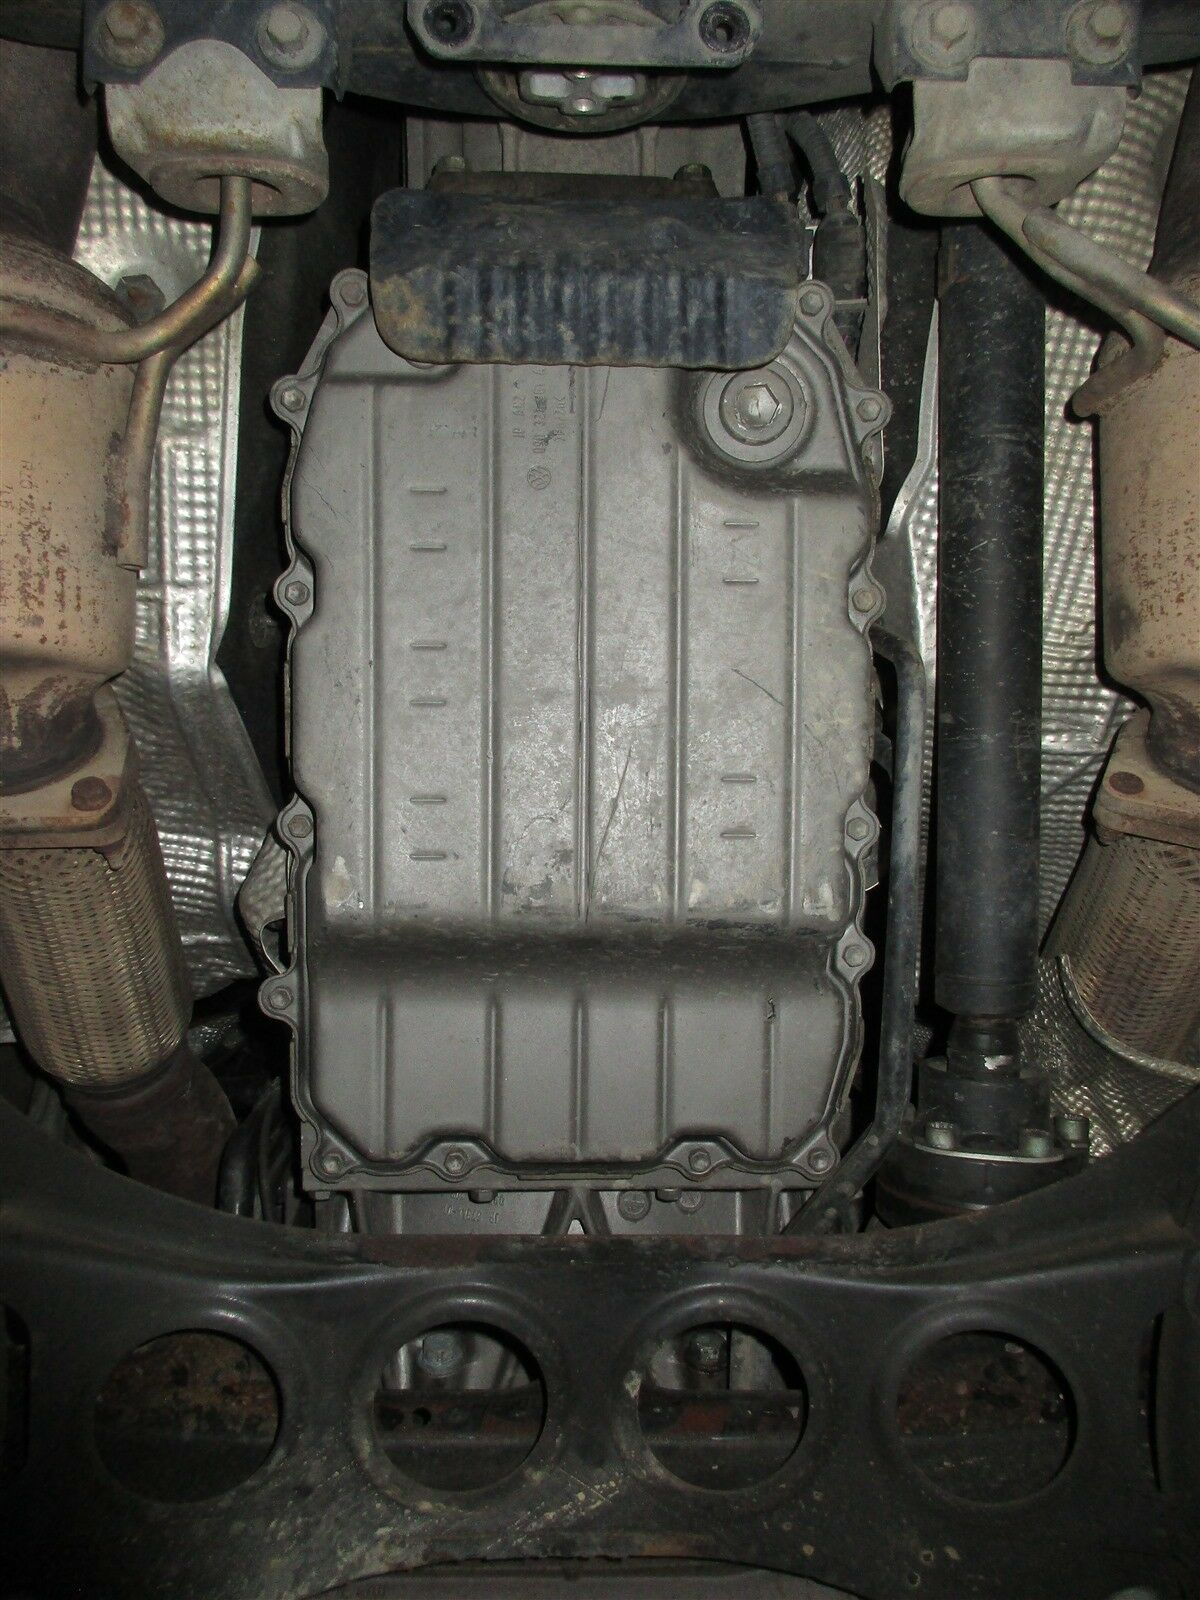 05 Cayenne S Porsche 955 AUTOMATIC TRANSMISSION GEAR BOX HAS 09D300037G 116,472